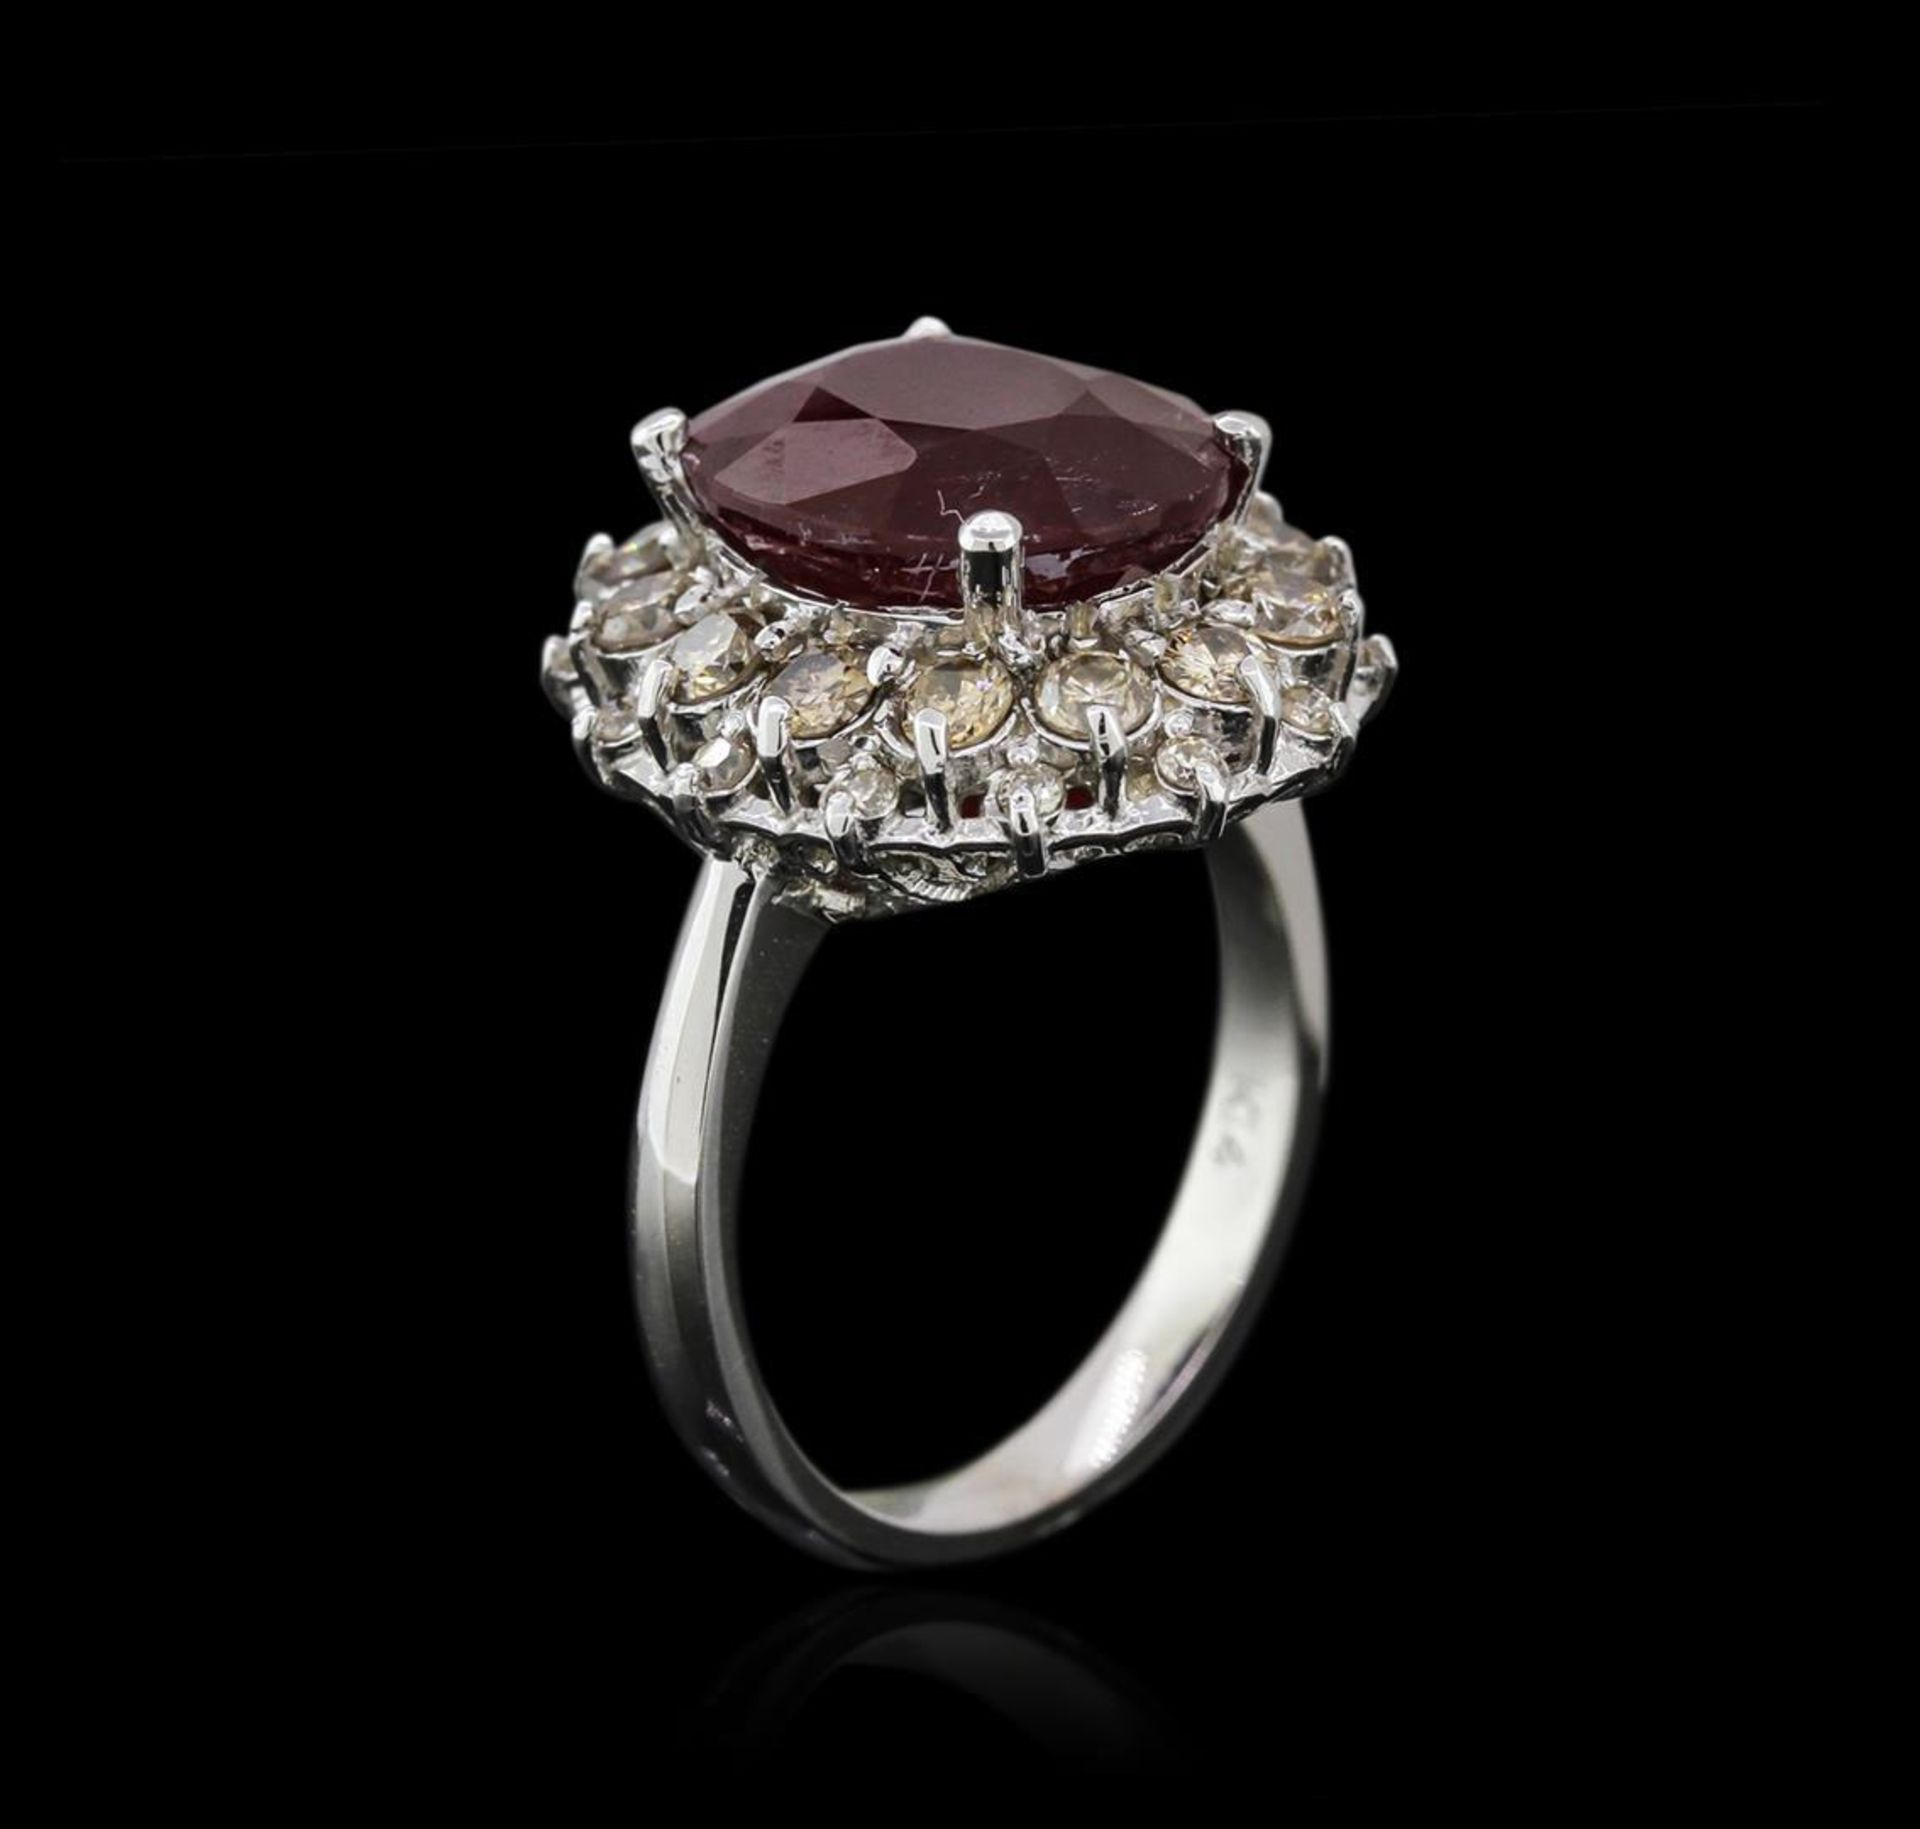 14KT White Gold 6.16 ctw Ruby and Diamond Ring - Image 3 of 4